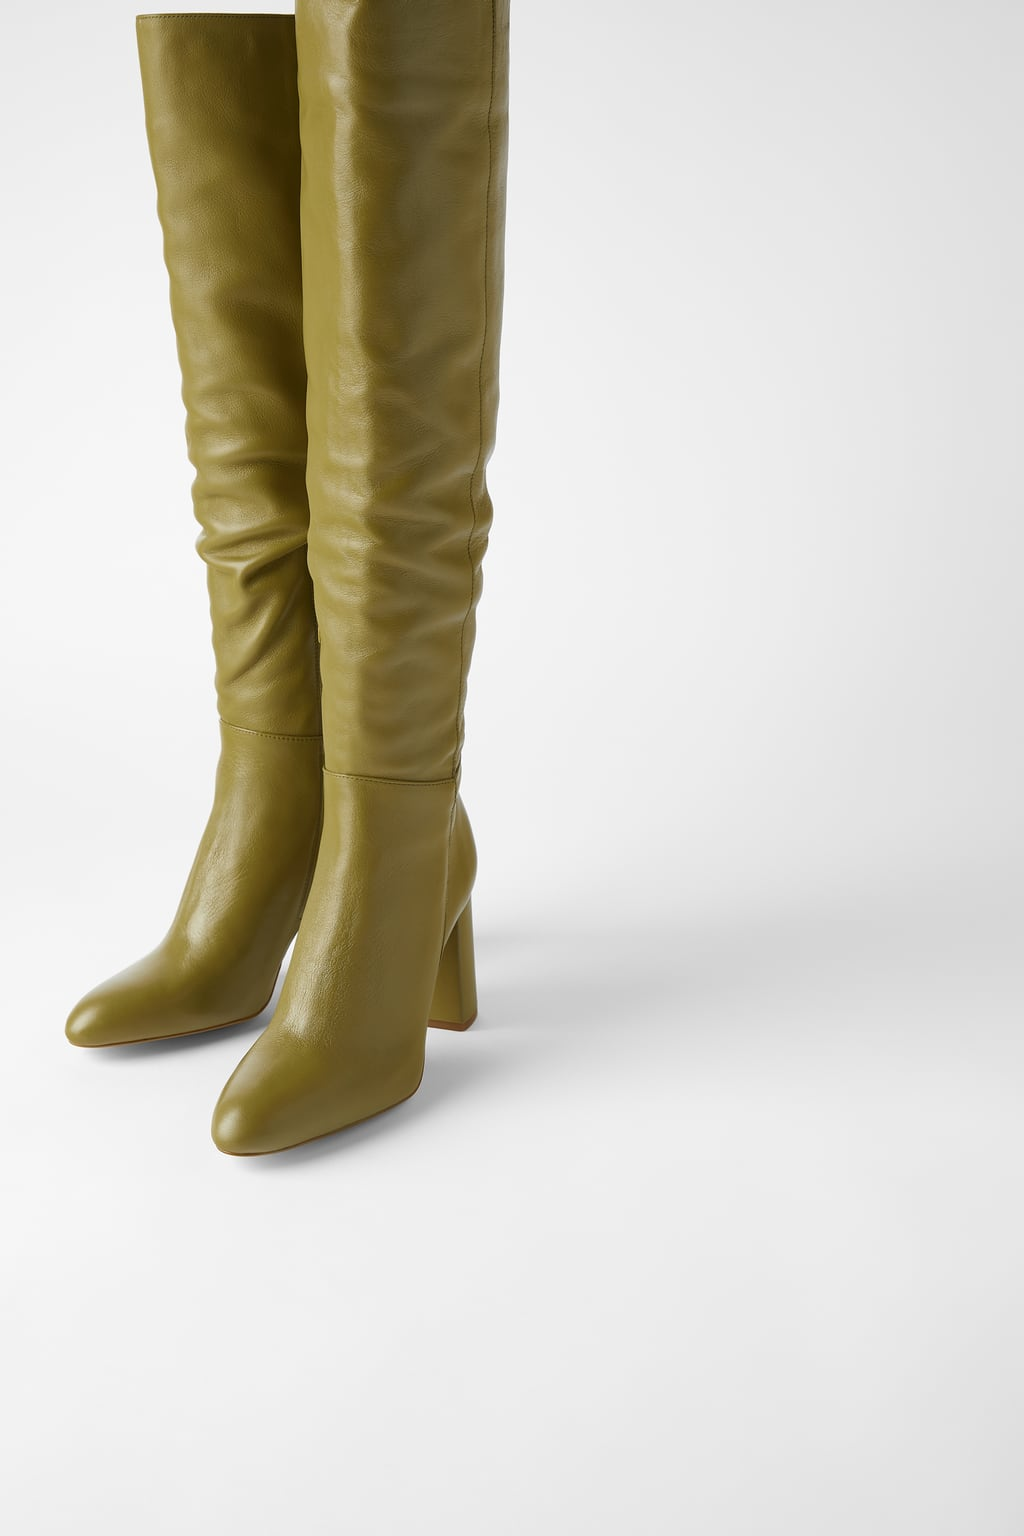 High Leg Leather Heeled Boots, $199